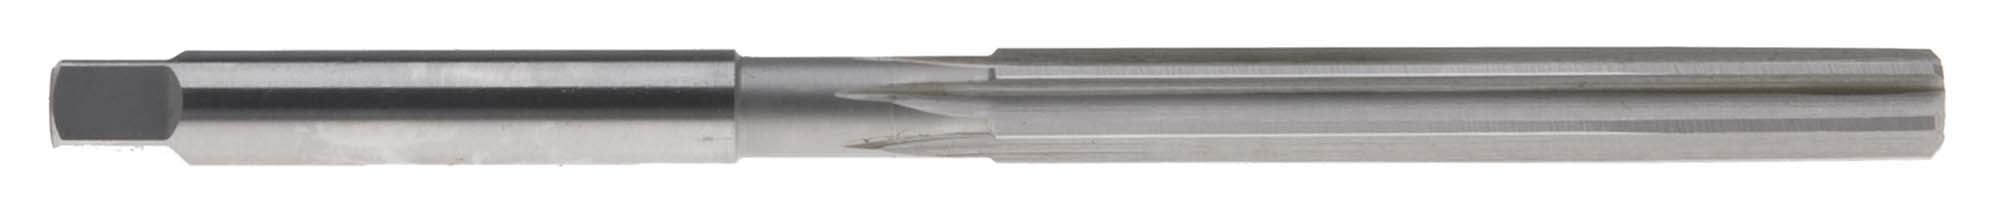 "7/16"" Straight Flute Hand Reamer, High Speed Steel"